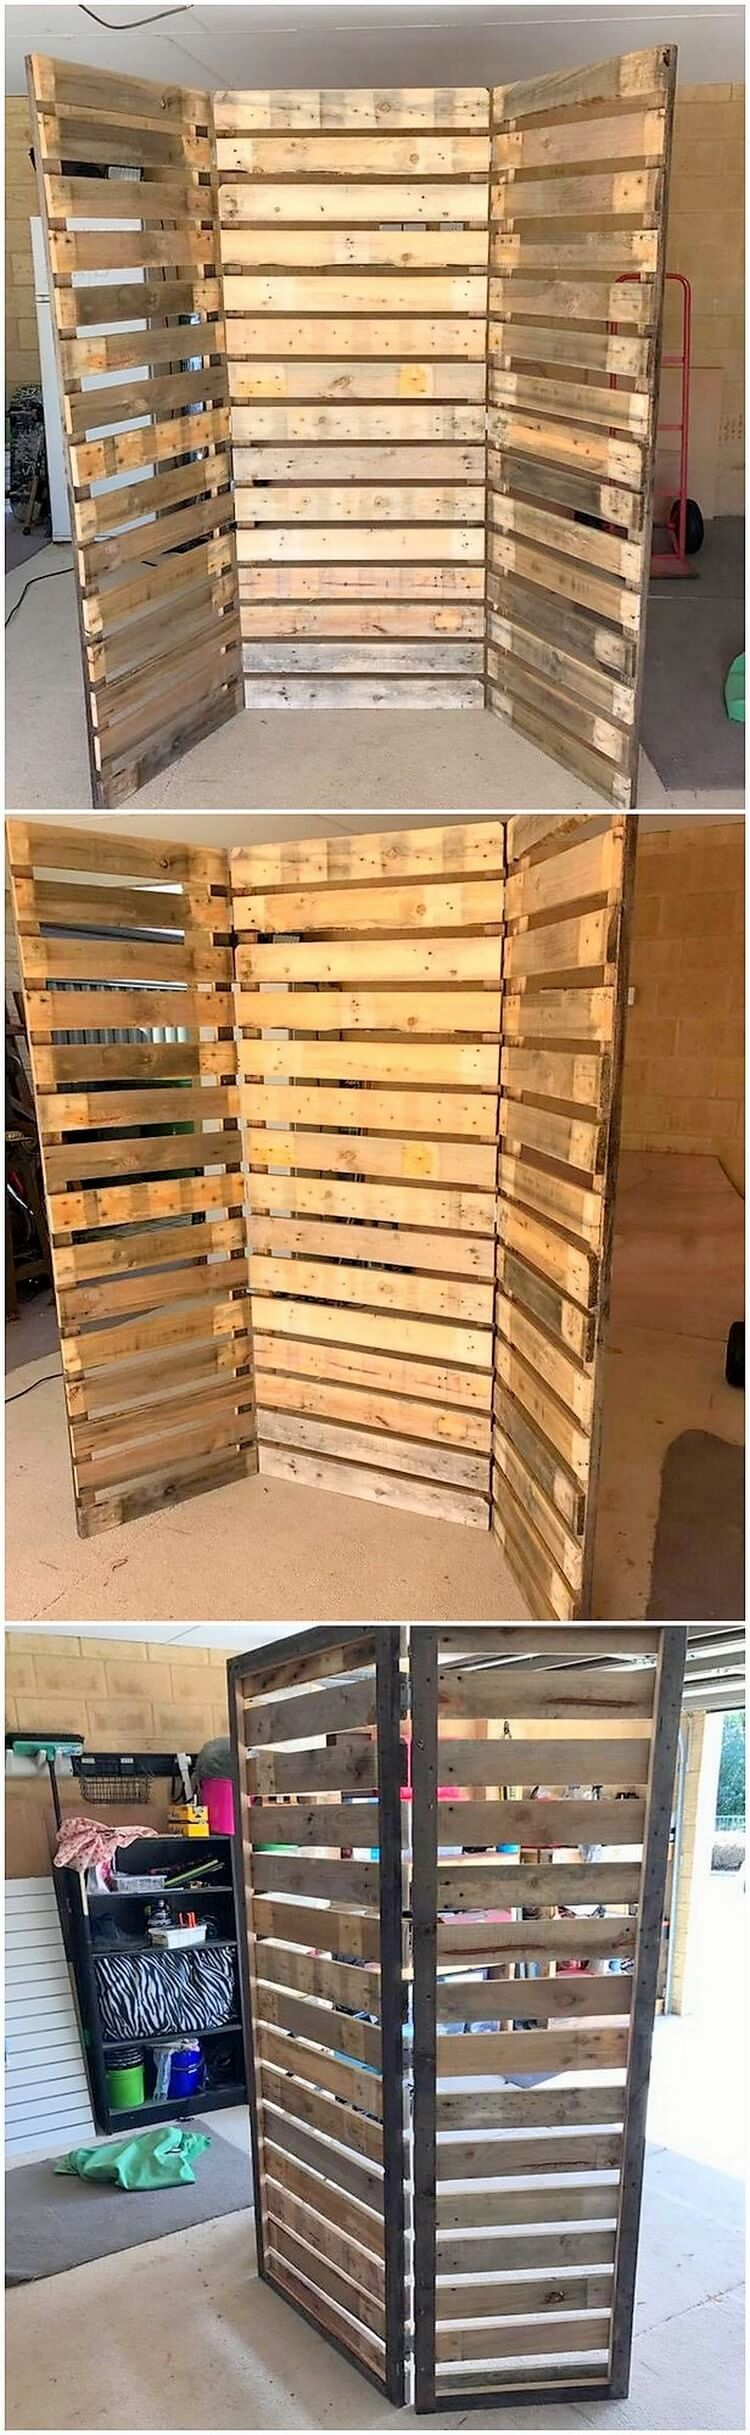 Exciting ways to make use of wood pallets in diy projects for Diy projects using wood pallets